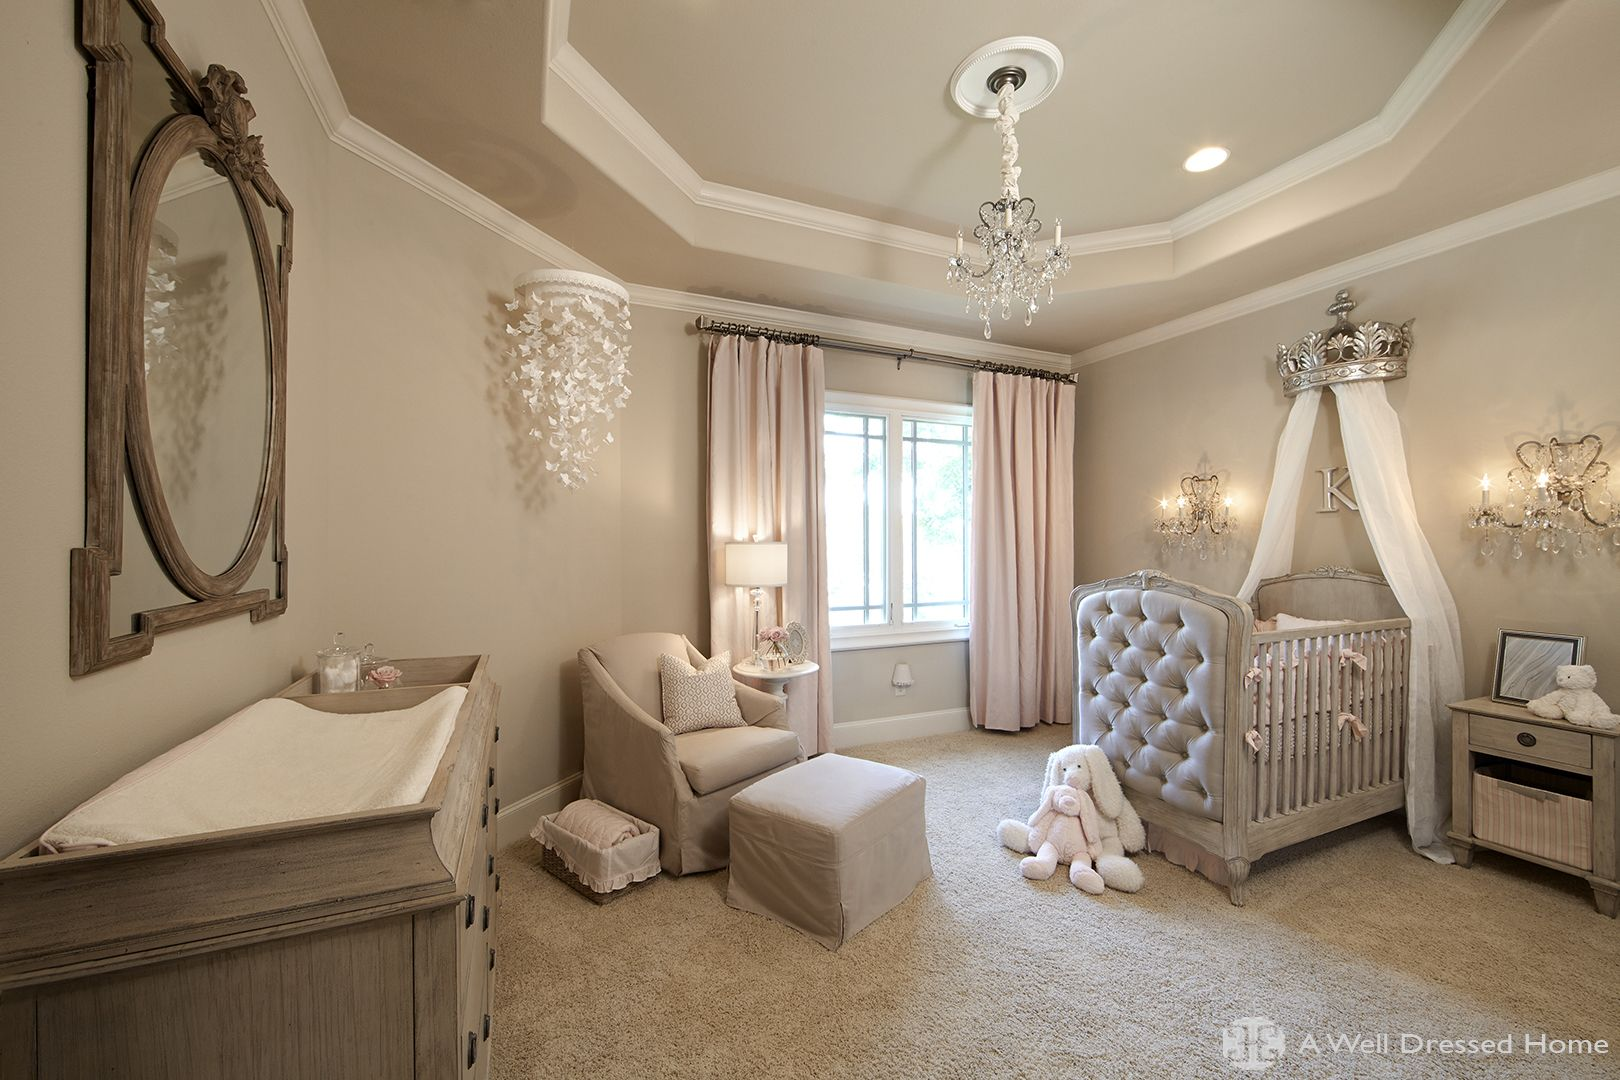 Find Inspiration To Create The Most Luxurious Bedroom For S With Latest Interior Design Trends See More At Circu